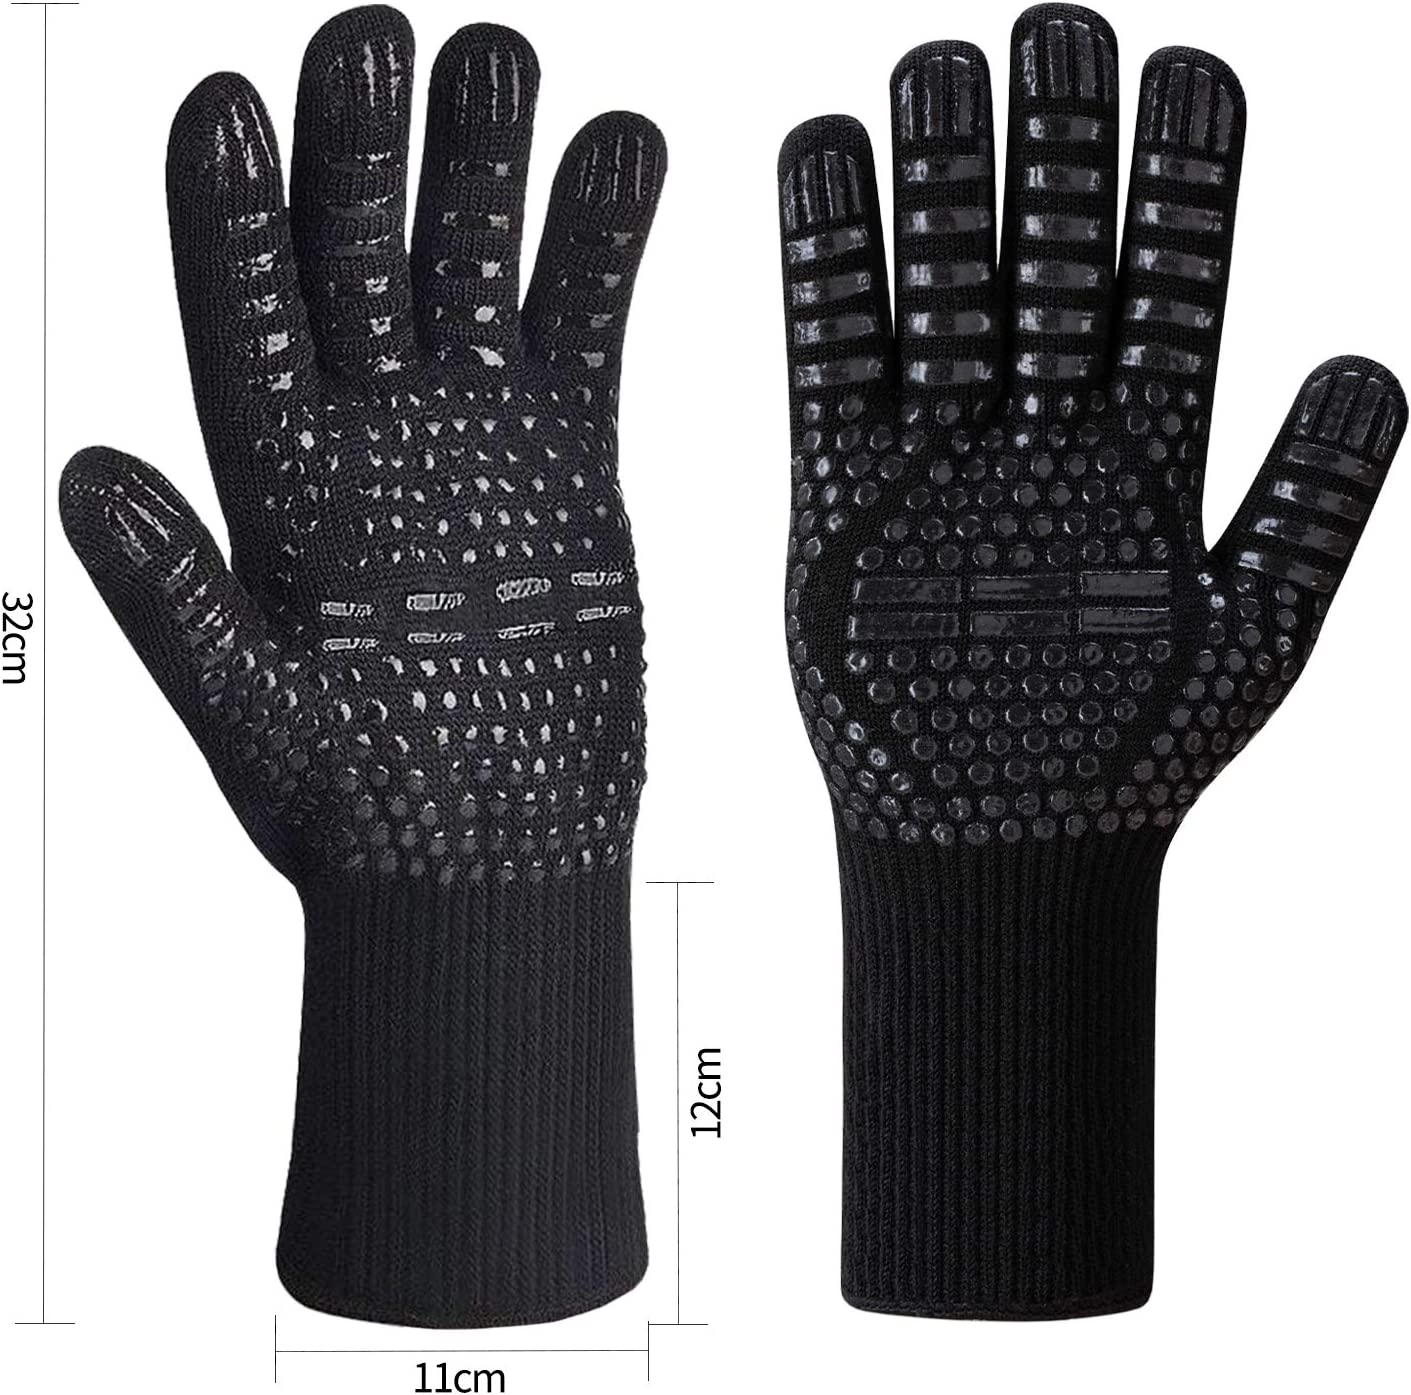 Welding Kitchen Grilling Baking Cooking Isilila BBQ Gloves Extreme Heat Resistant Up to 800 ℃//1472 with EN407 Grill Gloves Oven Gloves Cooking Gloves for BBQ Black